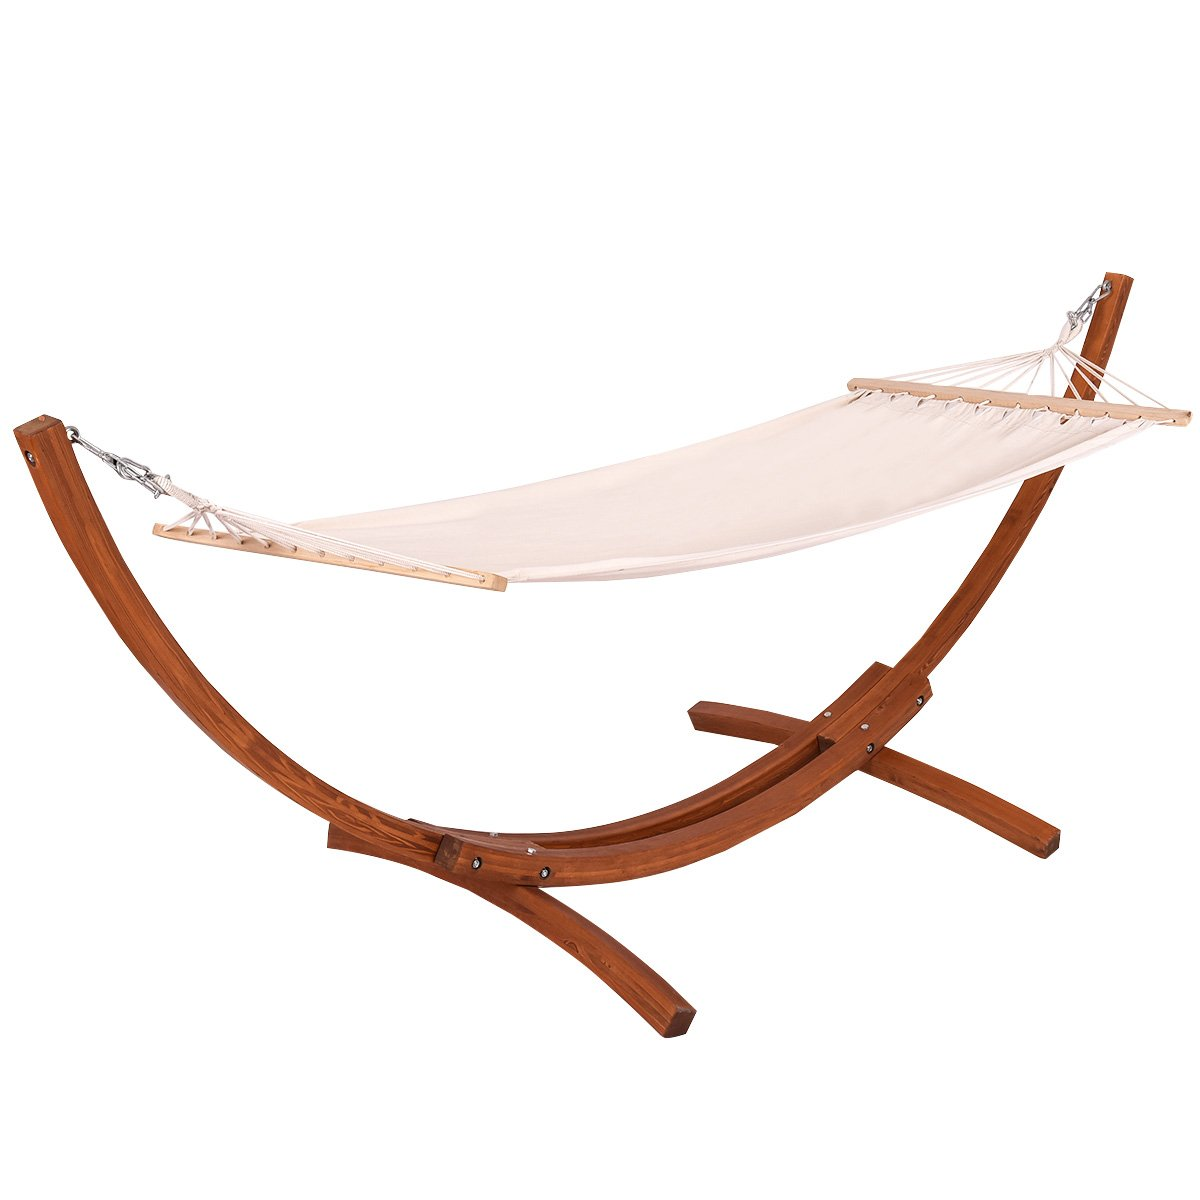 Giantex Wooden Curved Arc Wide Hammock Swing and Stand Set,white (142''x50''x51'') by Giantex